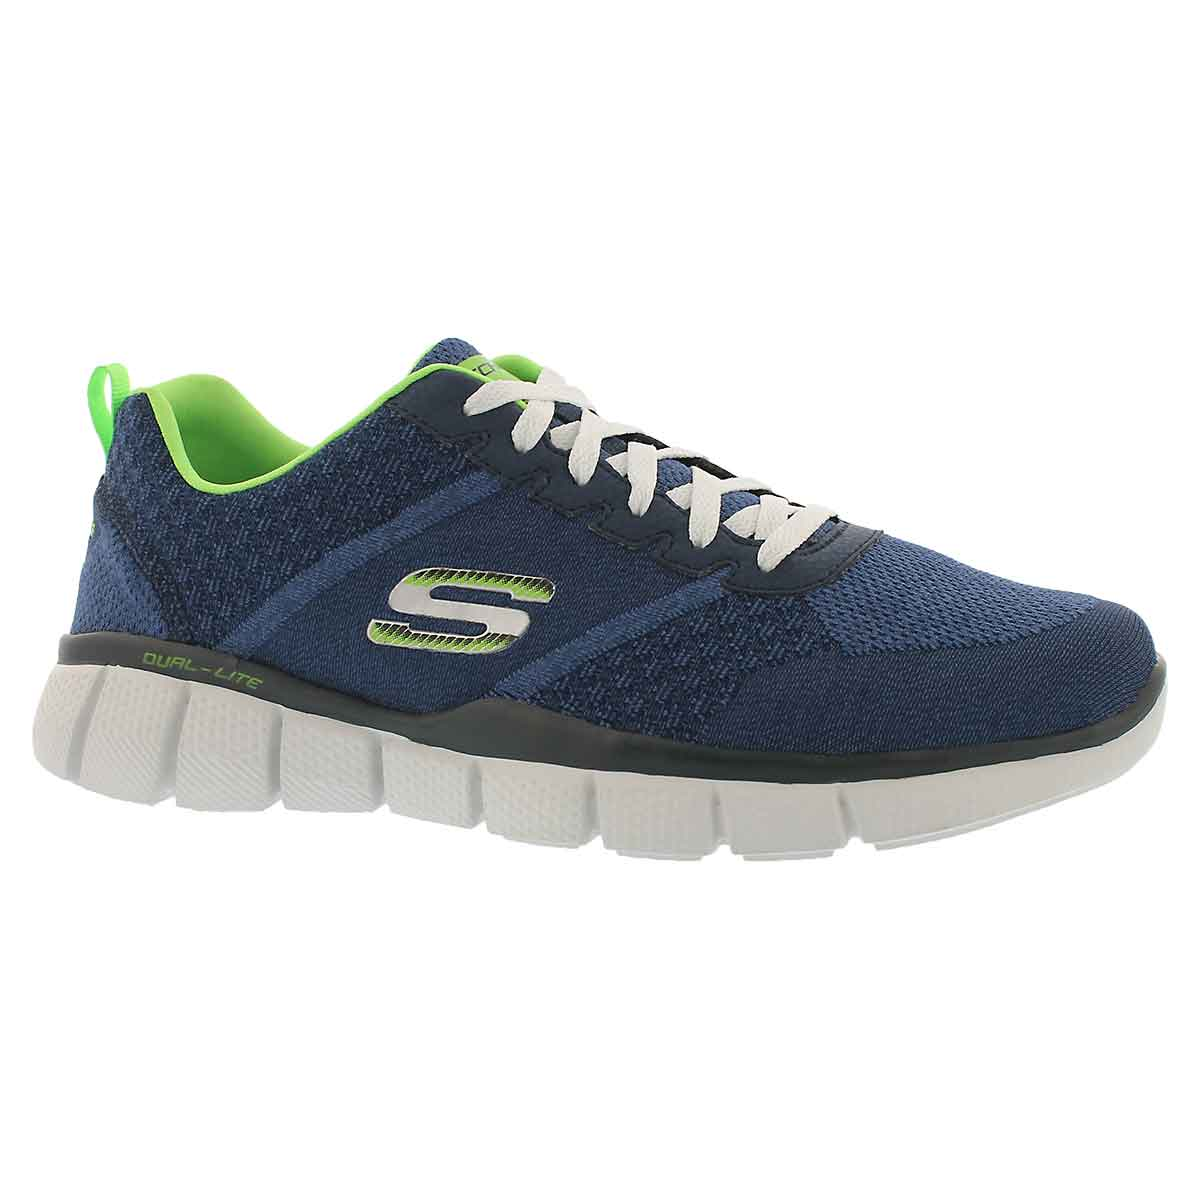 Men's TRUE BALANCE navy/lime running shoes - Wide